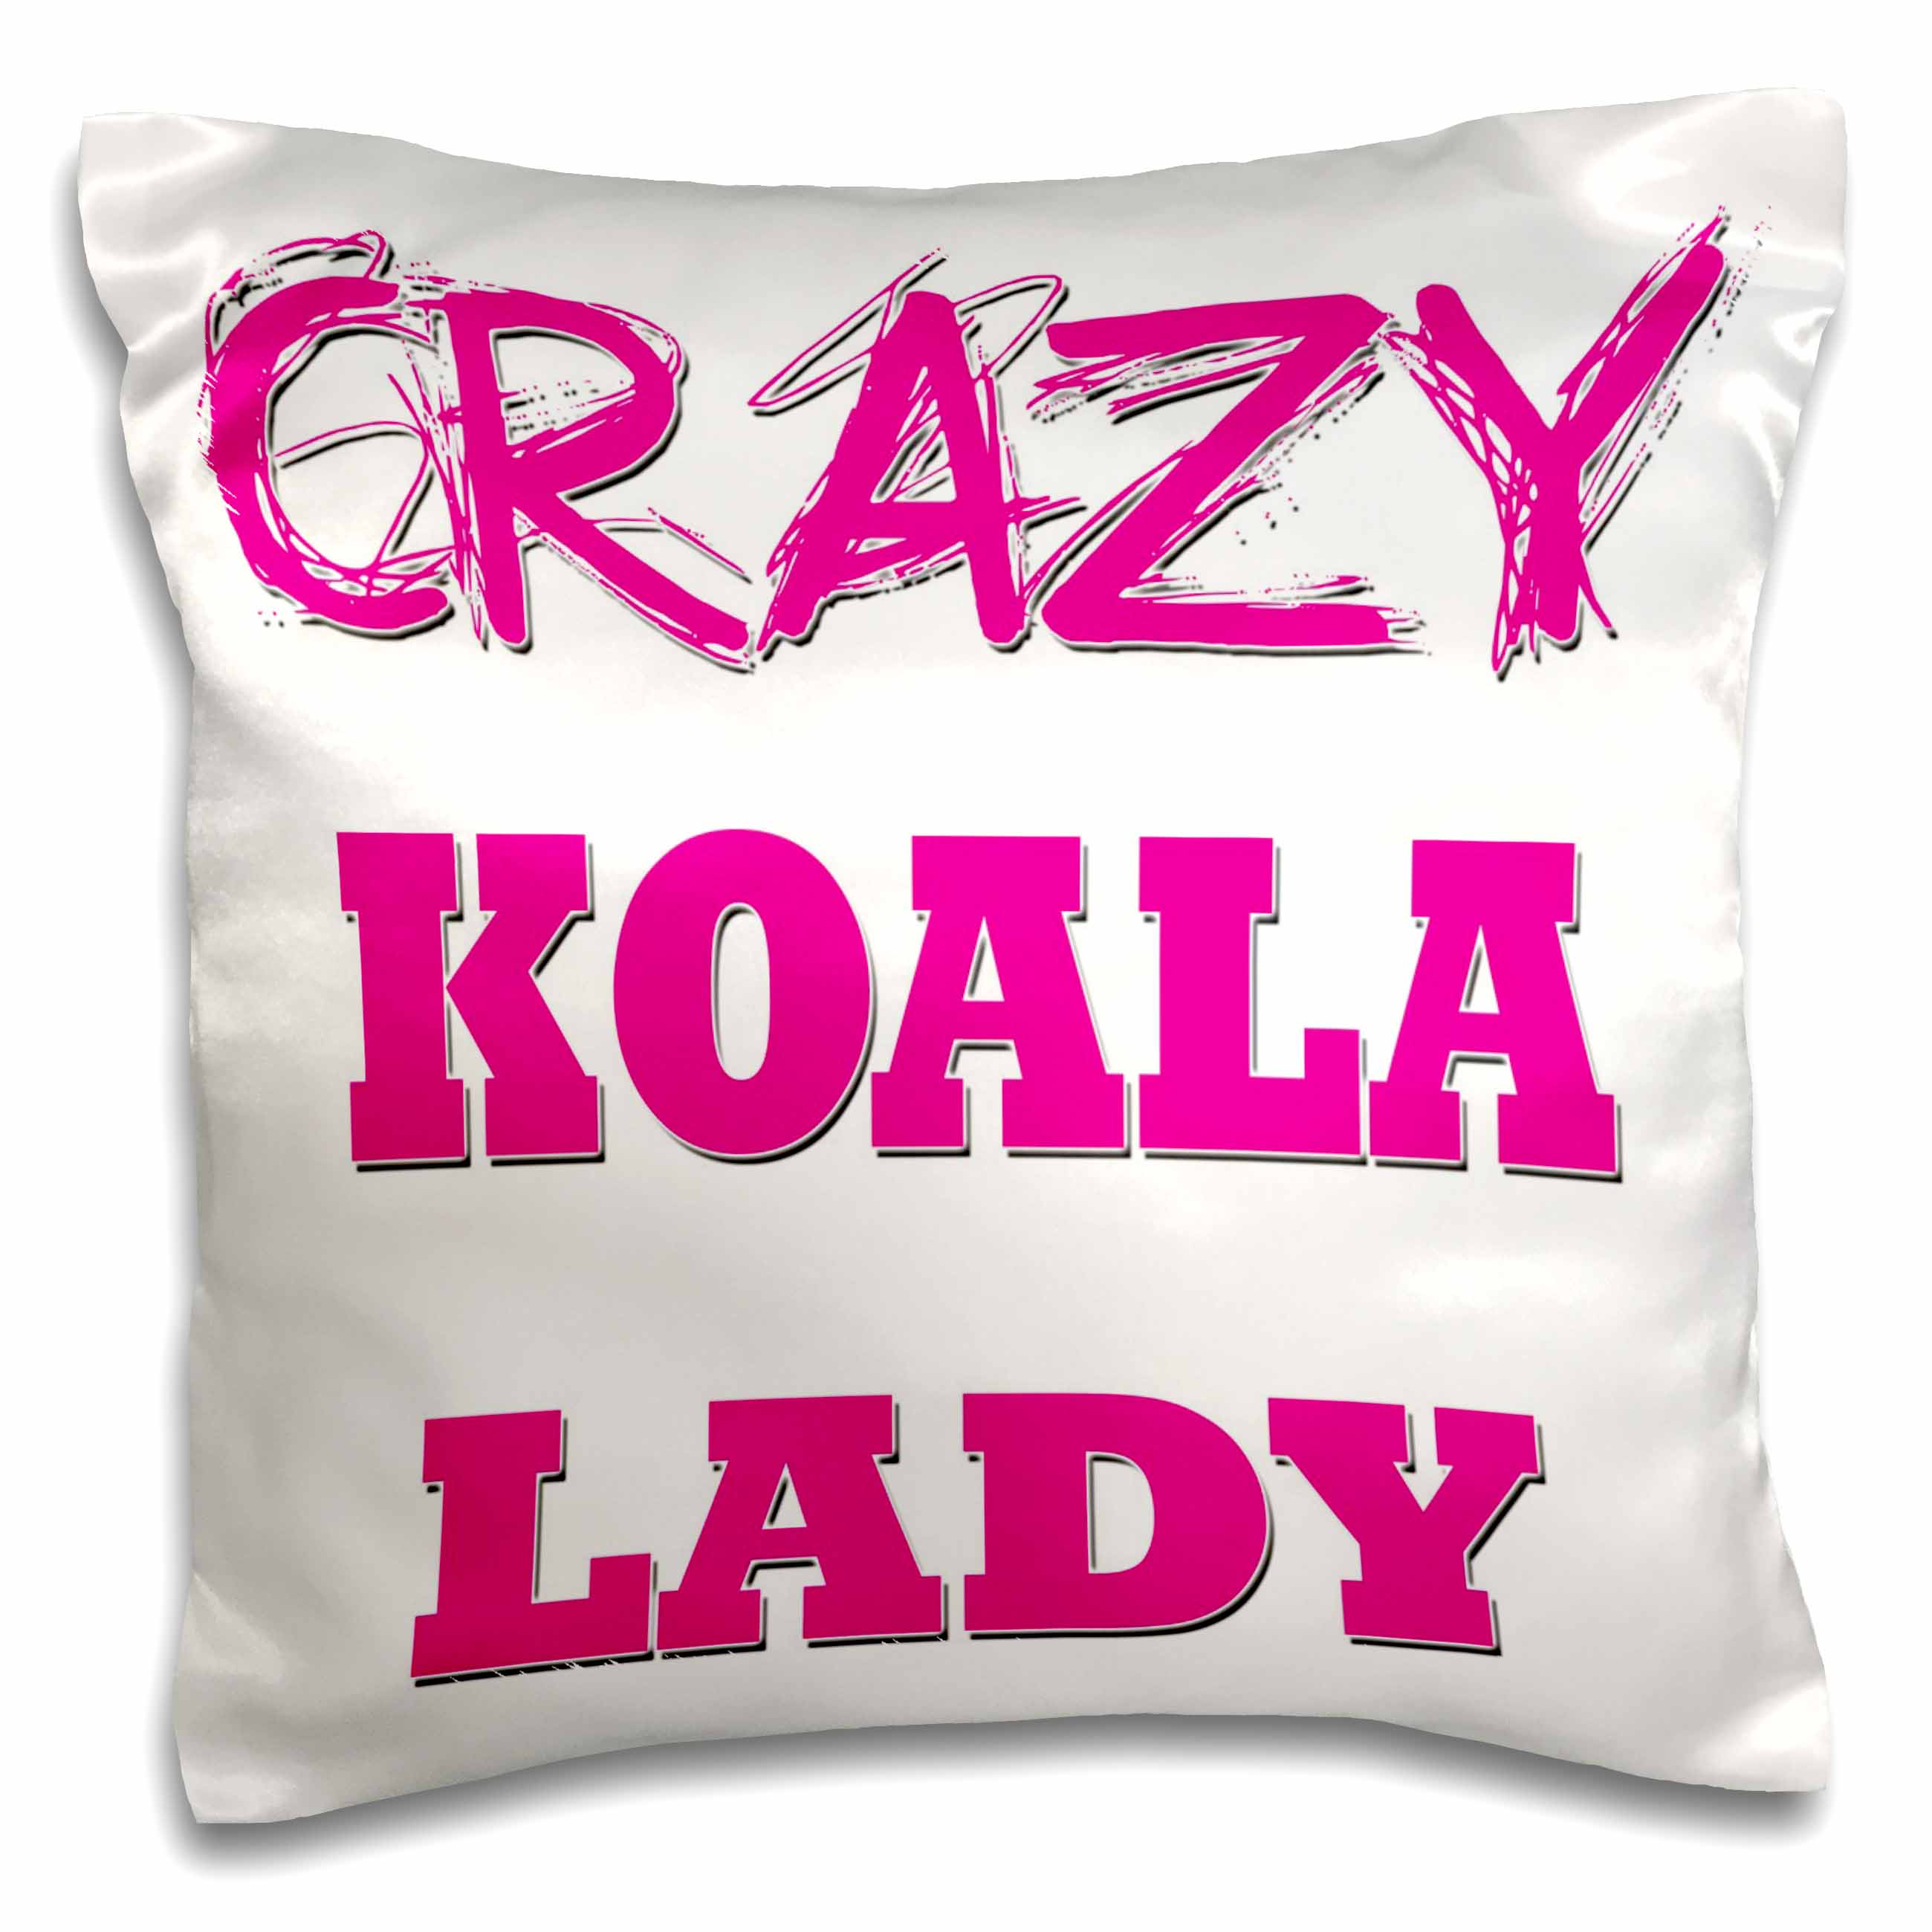 3drose Crazy Koala Lady Pillow Case 16 By 16 Inch